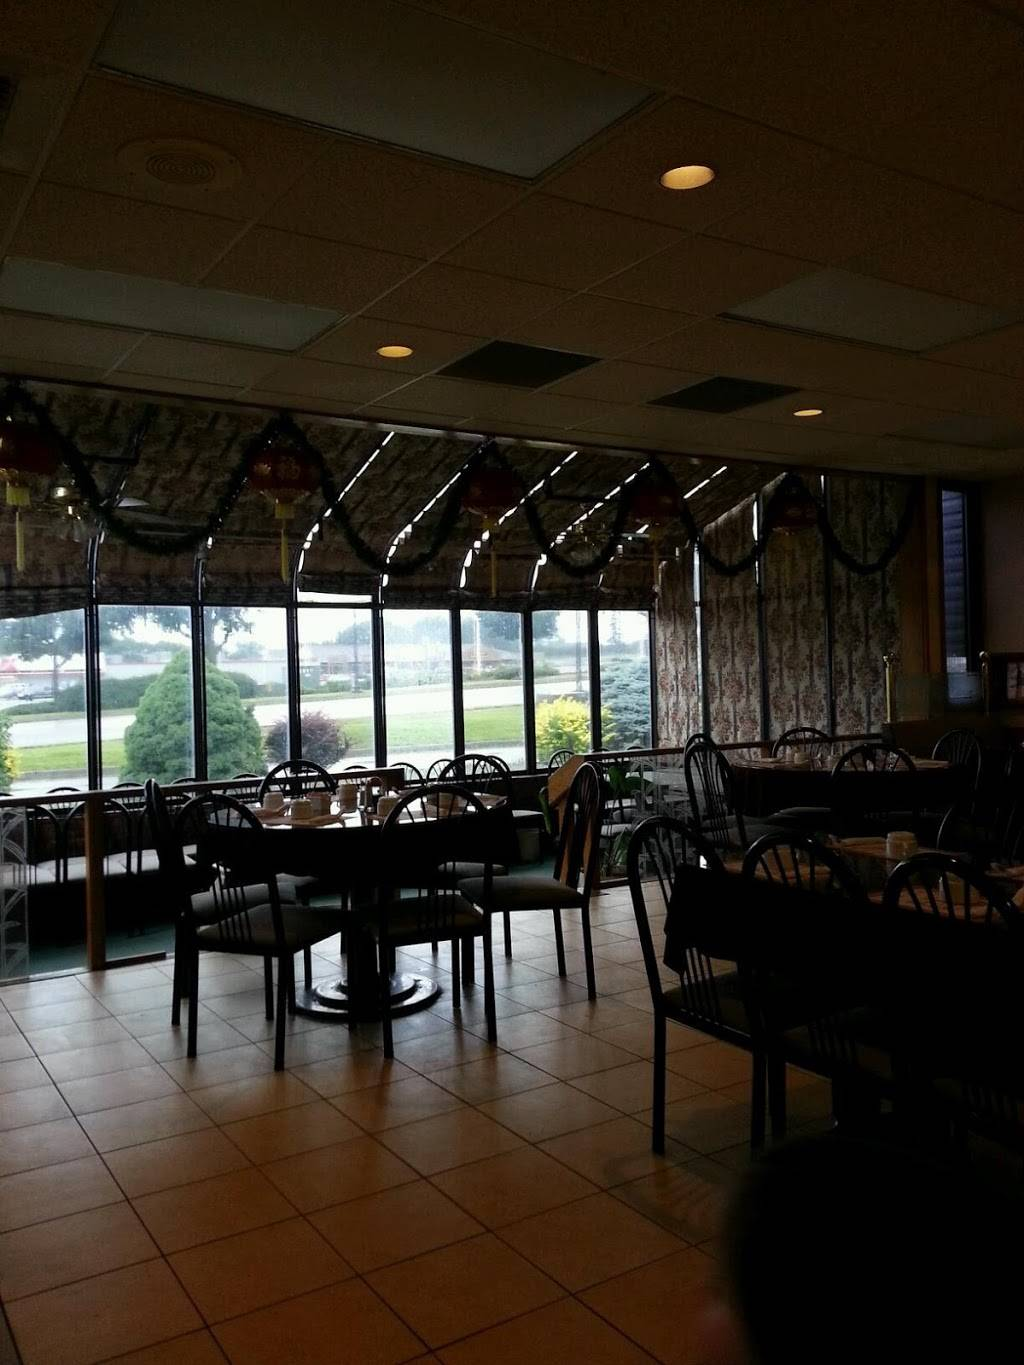 China Palace Restaurant | restaurant | 375 W National Rd, Englewood, OH 45322, USA | 9378361054 OR +1 937-836-1054